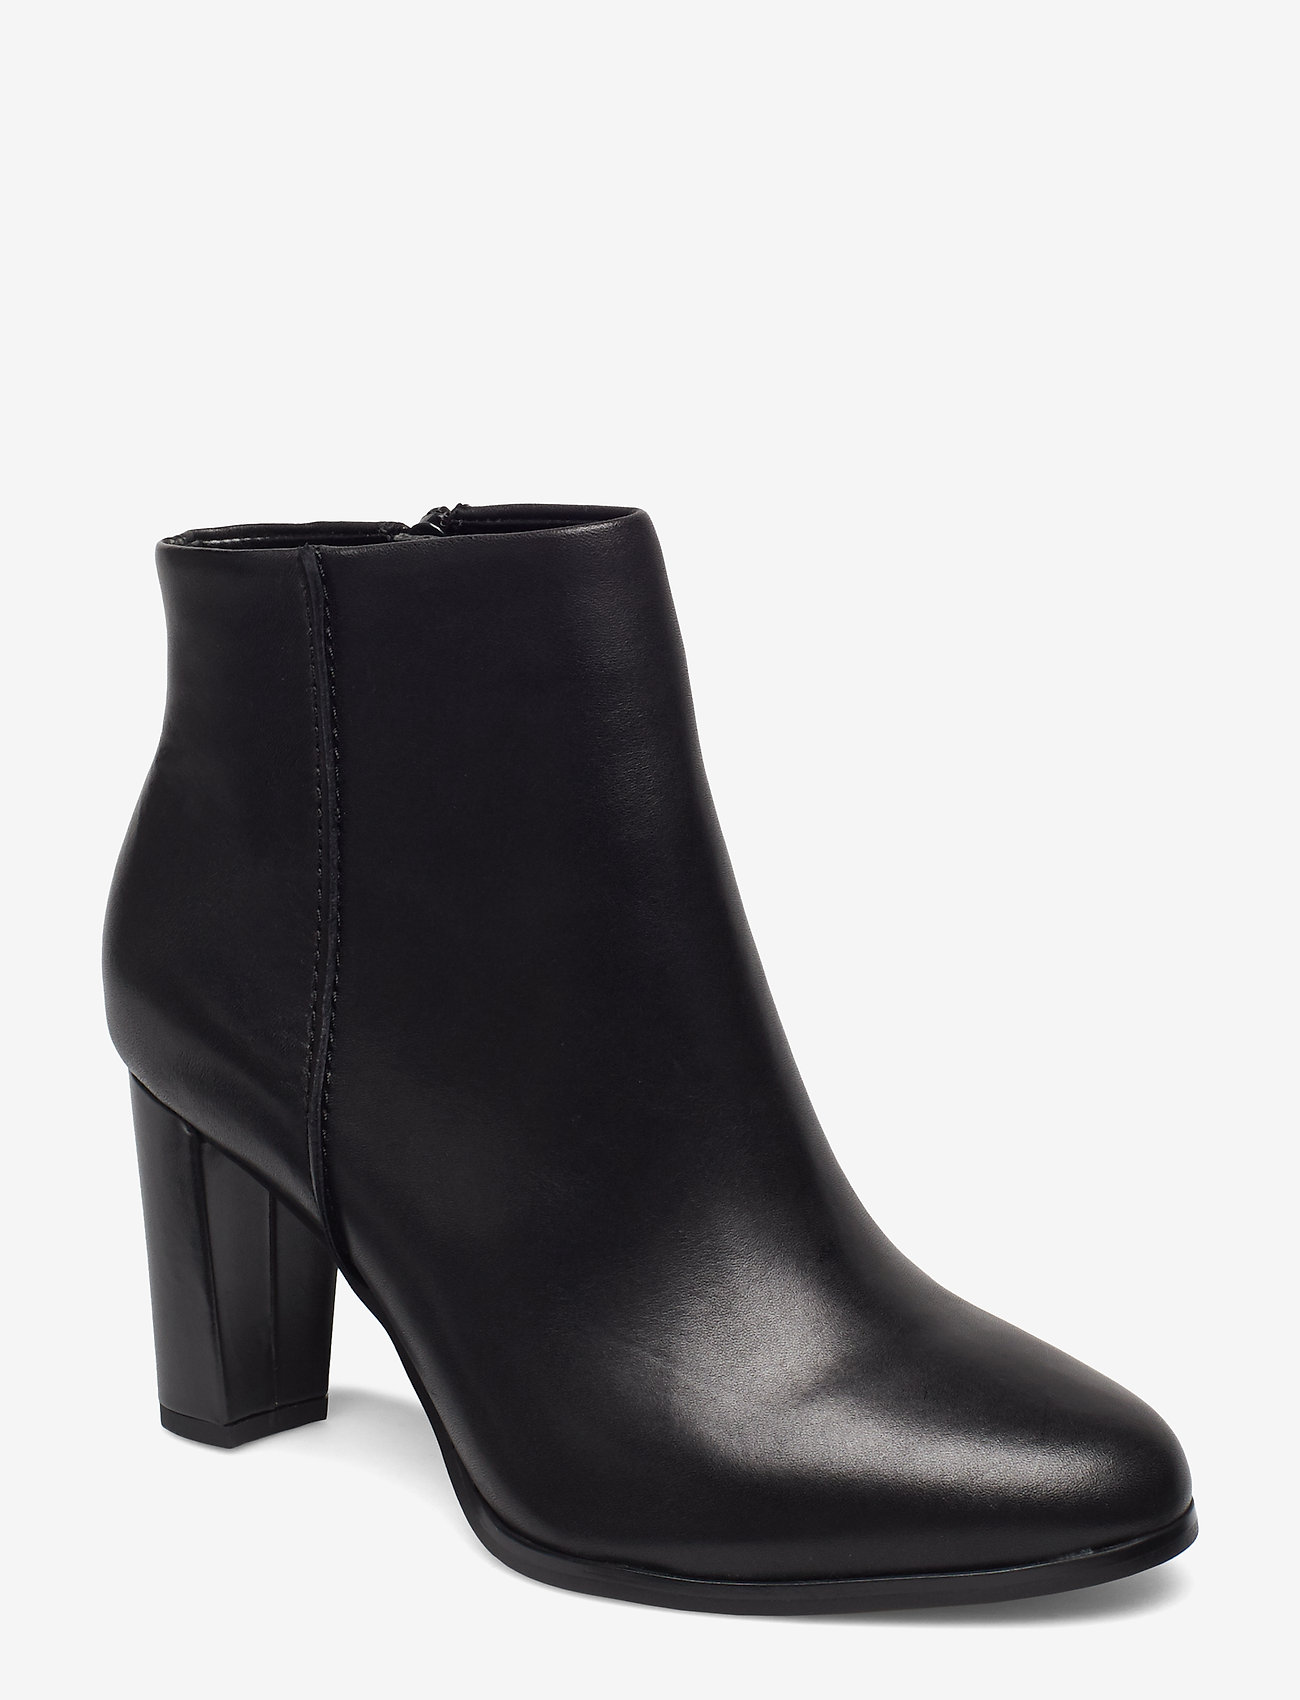 Clarks - Kaylin Fern - ankelboots med klack - black leather - 0